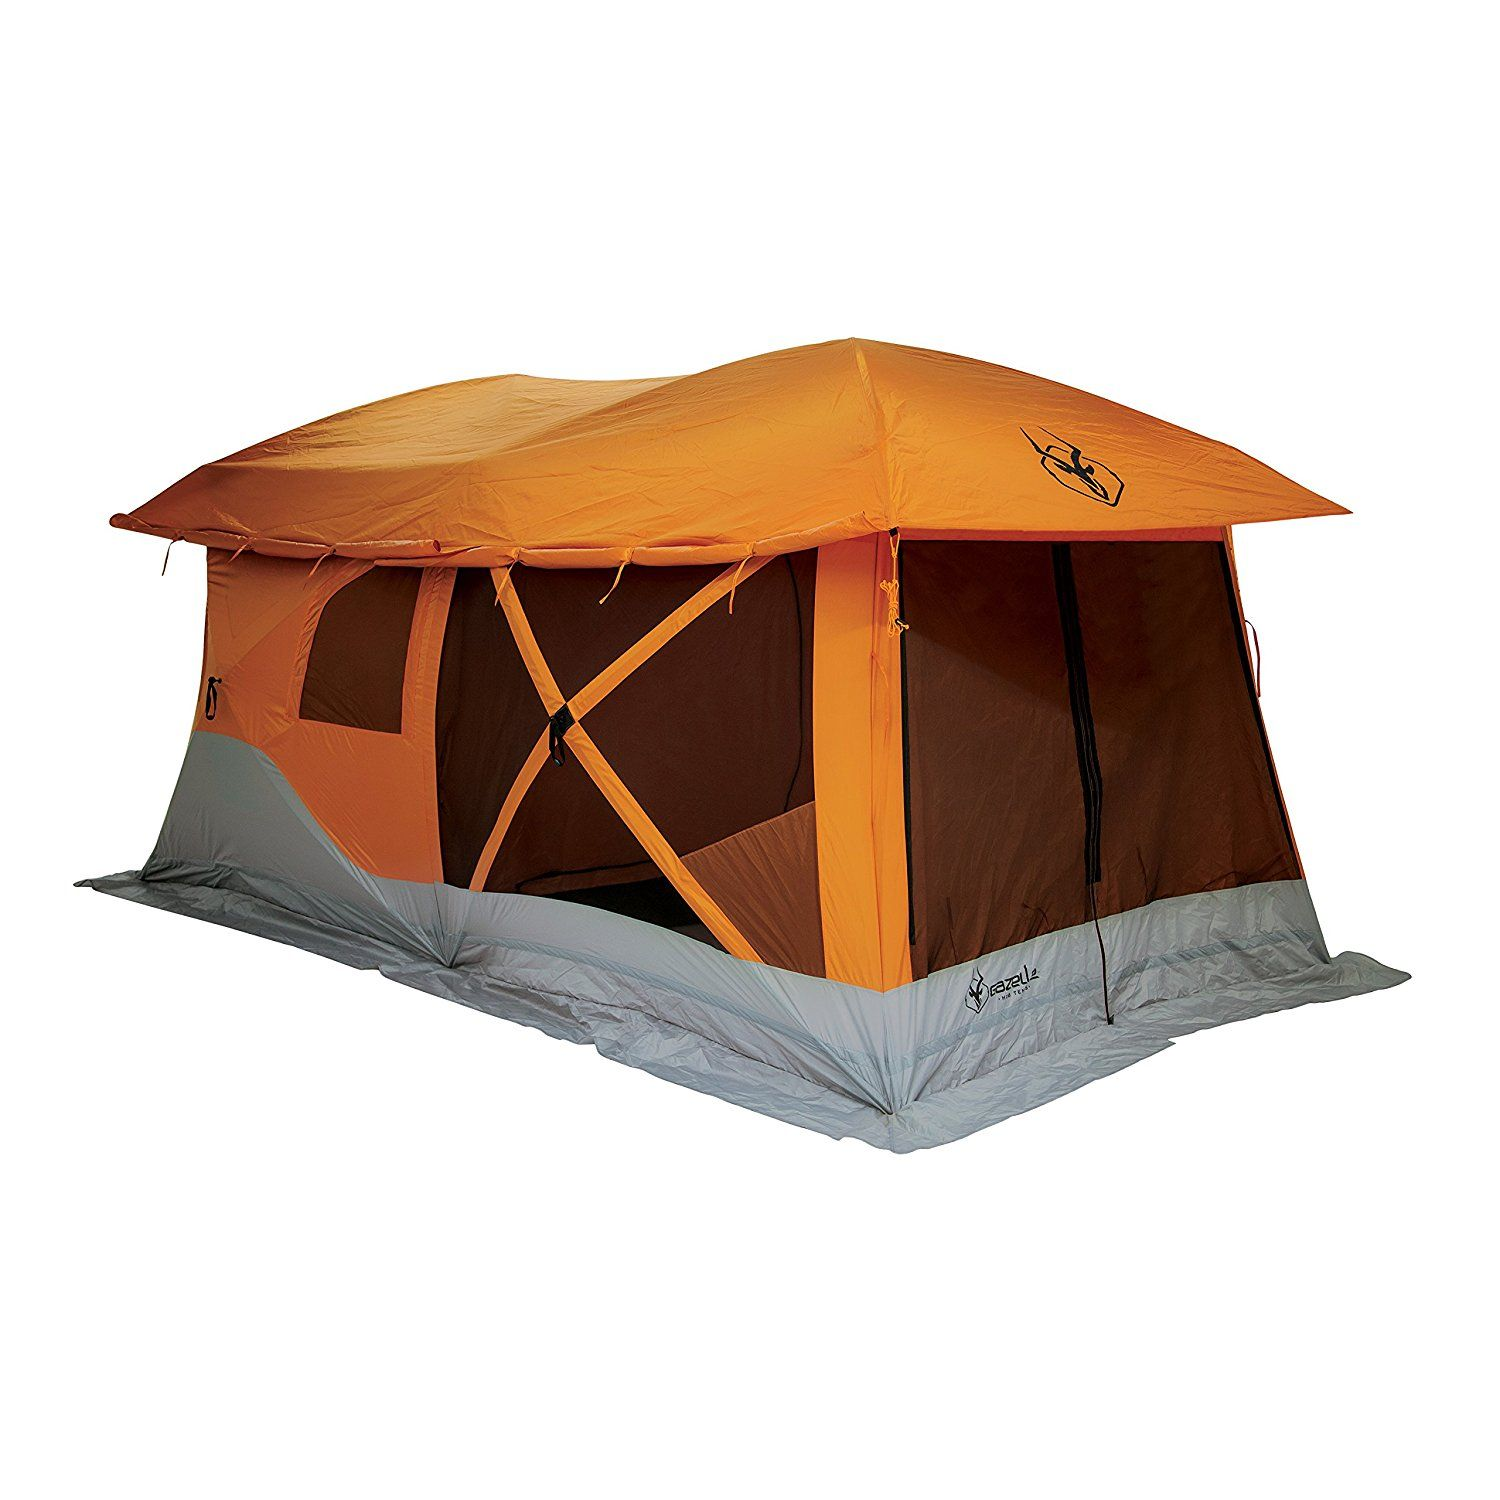 ... coleman tents c&ing gear c&ing equipment c&ing stove c&ing store canvas tents c&ing tent c&ing supplies 4 man tent family tents cheap tents ...  sc 1 st  Pinterest & tent pop up tent tents for sale camping tents coleman tents ...